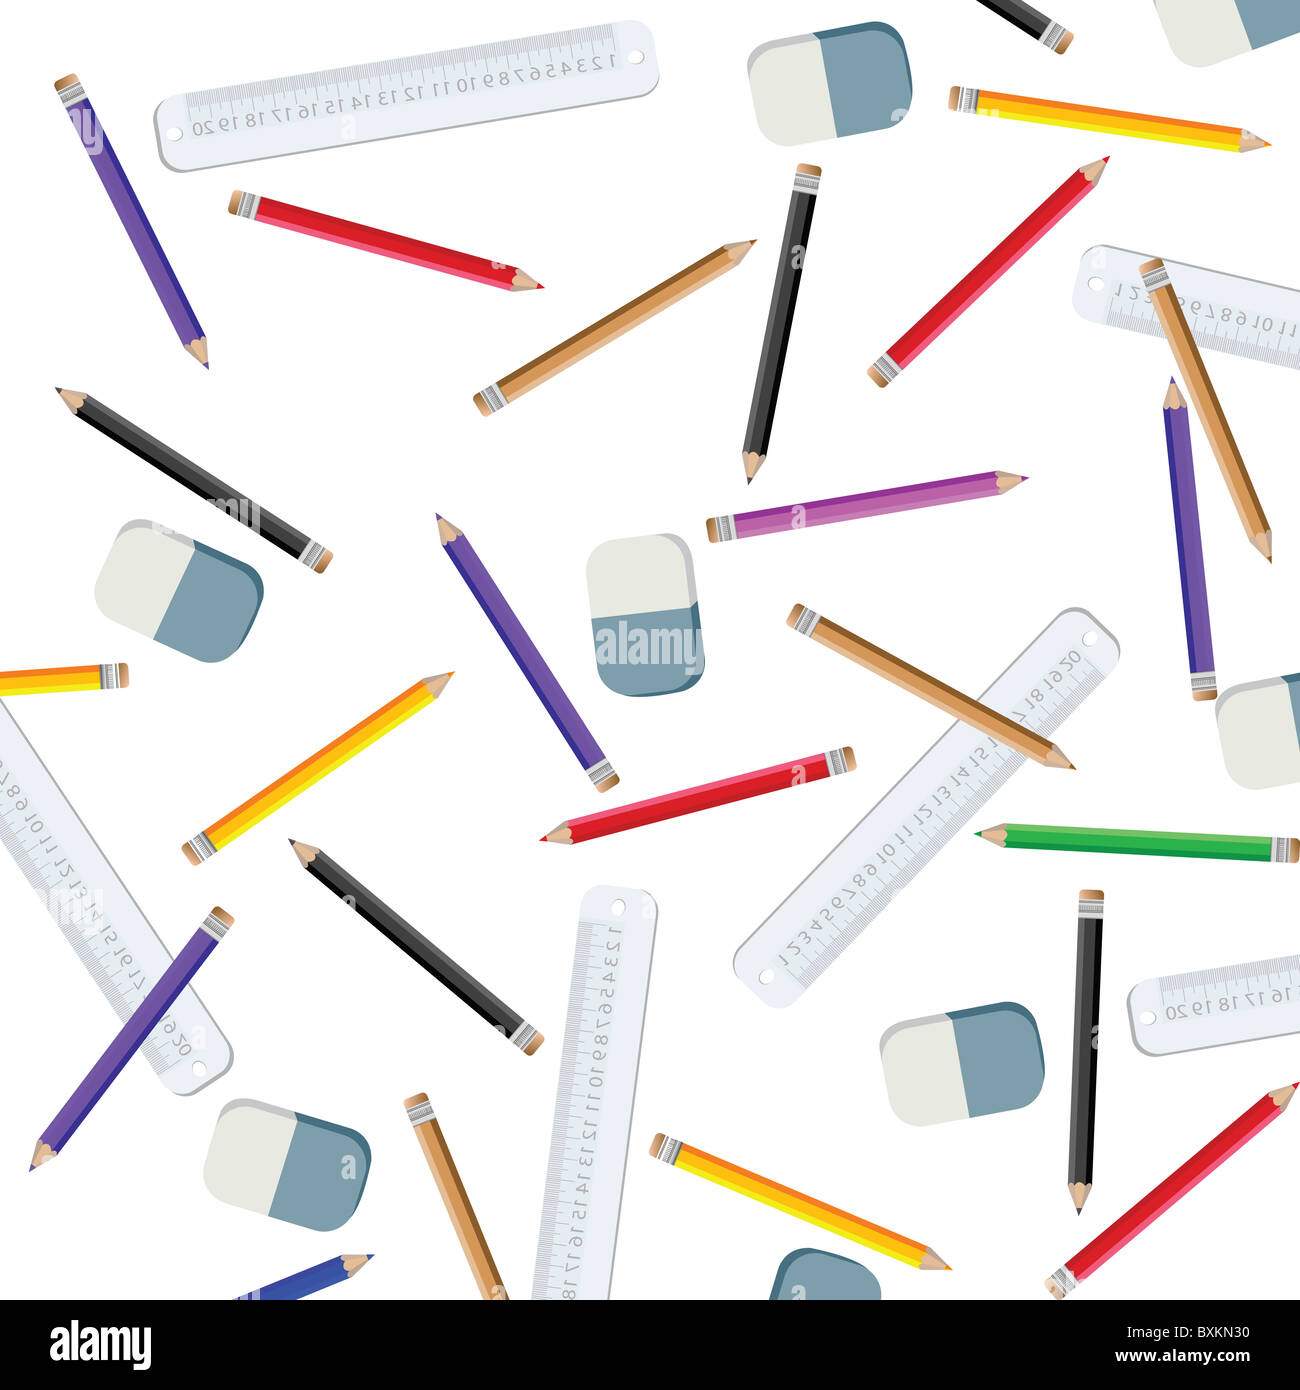 pencils and measuring lines - Stock Image